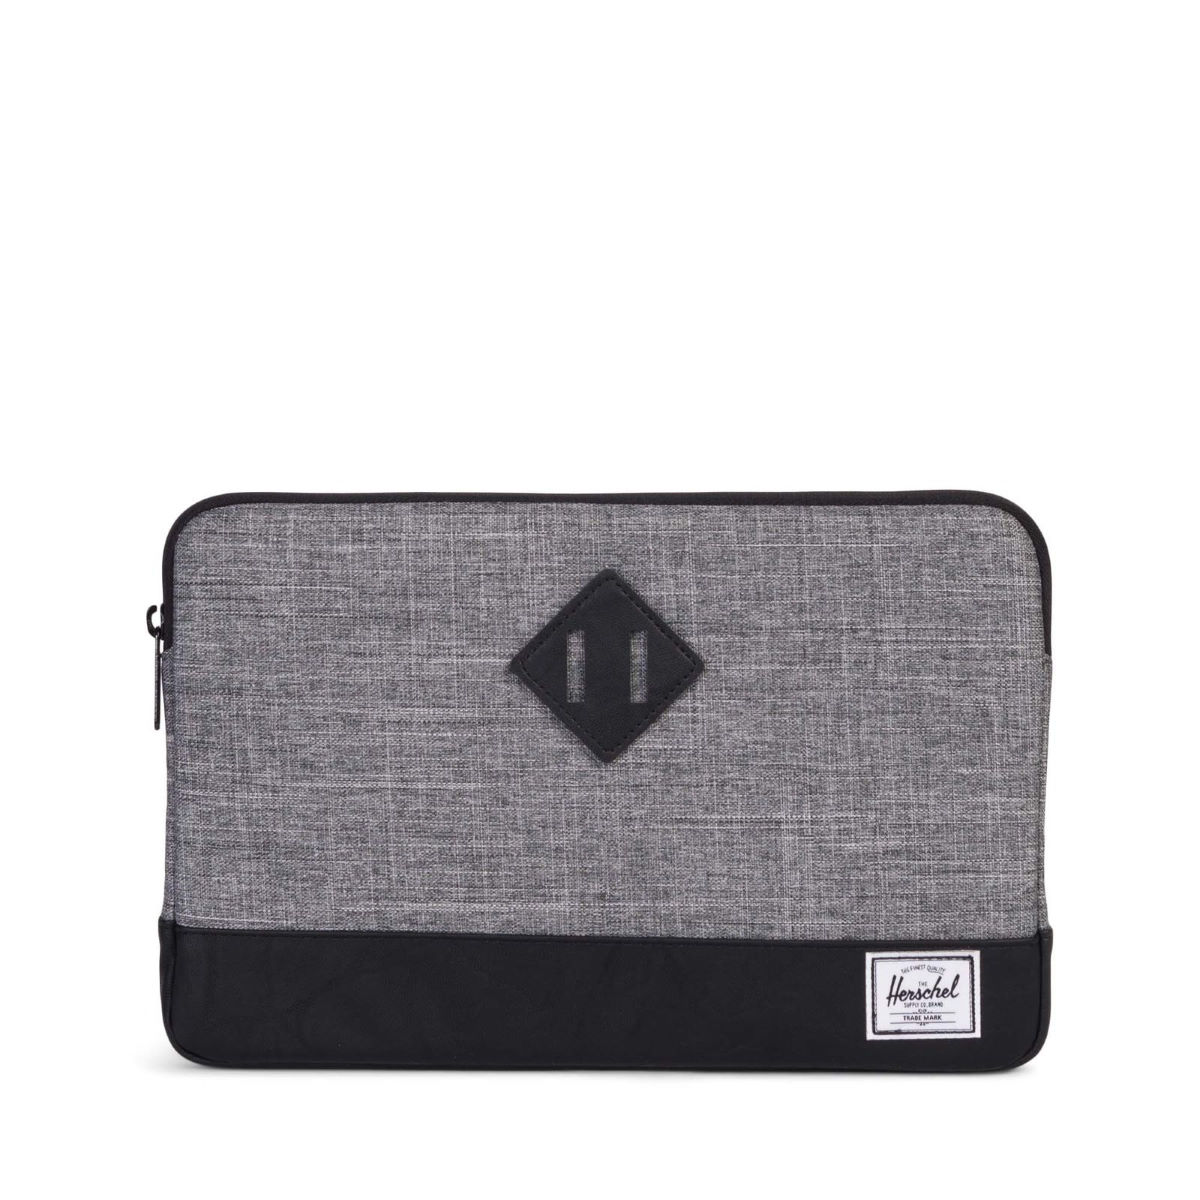 Herschel Heritage Sleeve for 12 inch Macbook - Bolsas de viaje